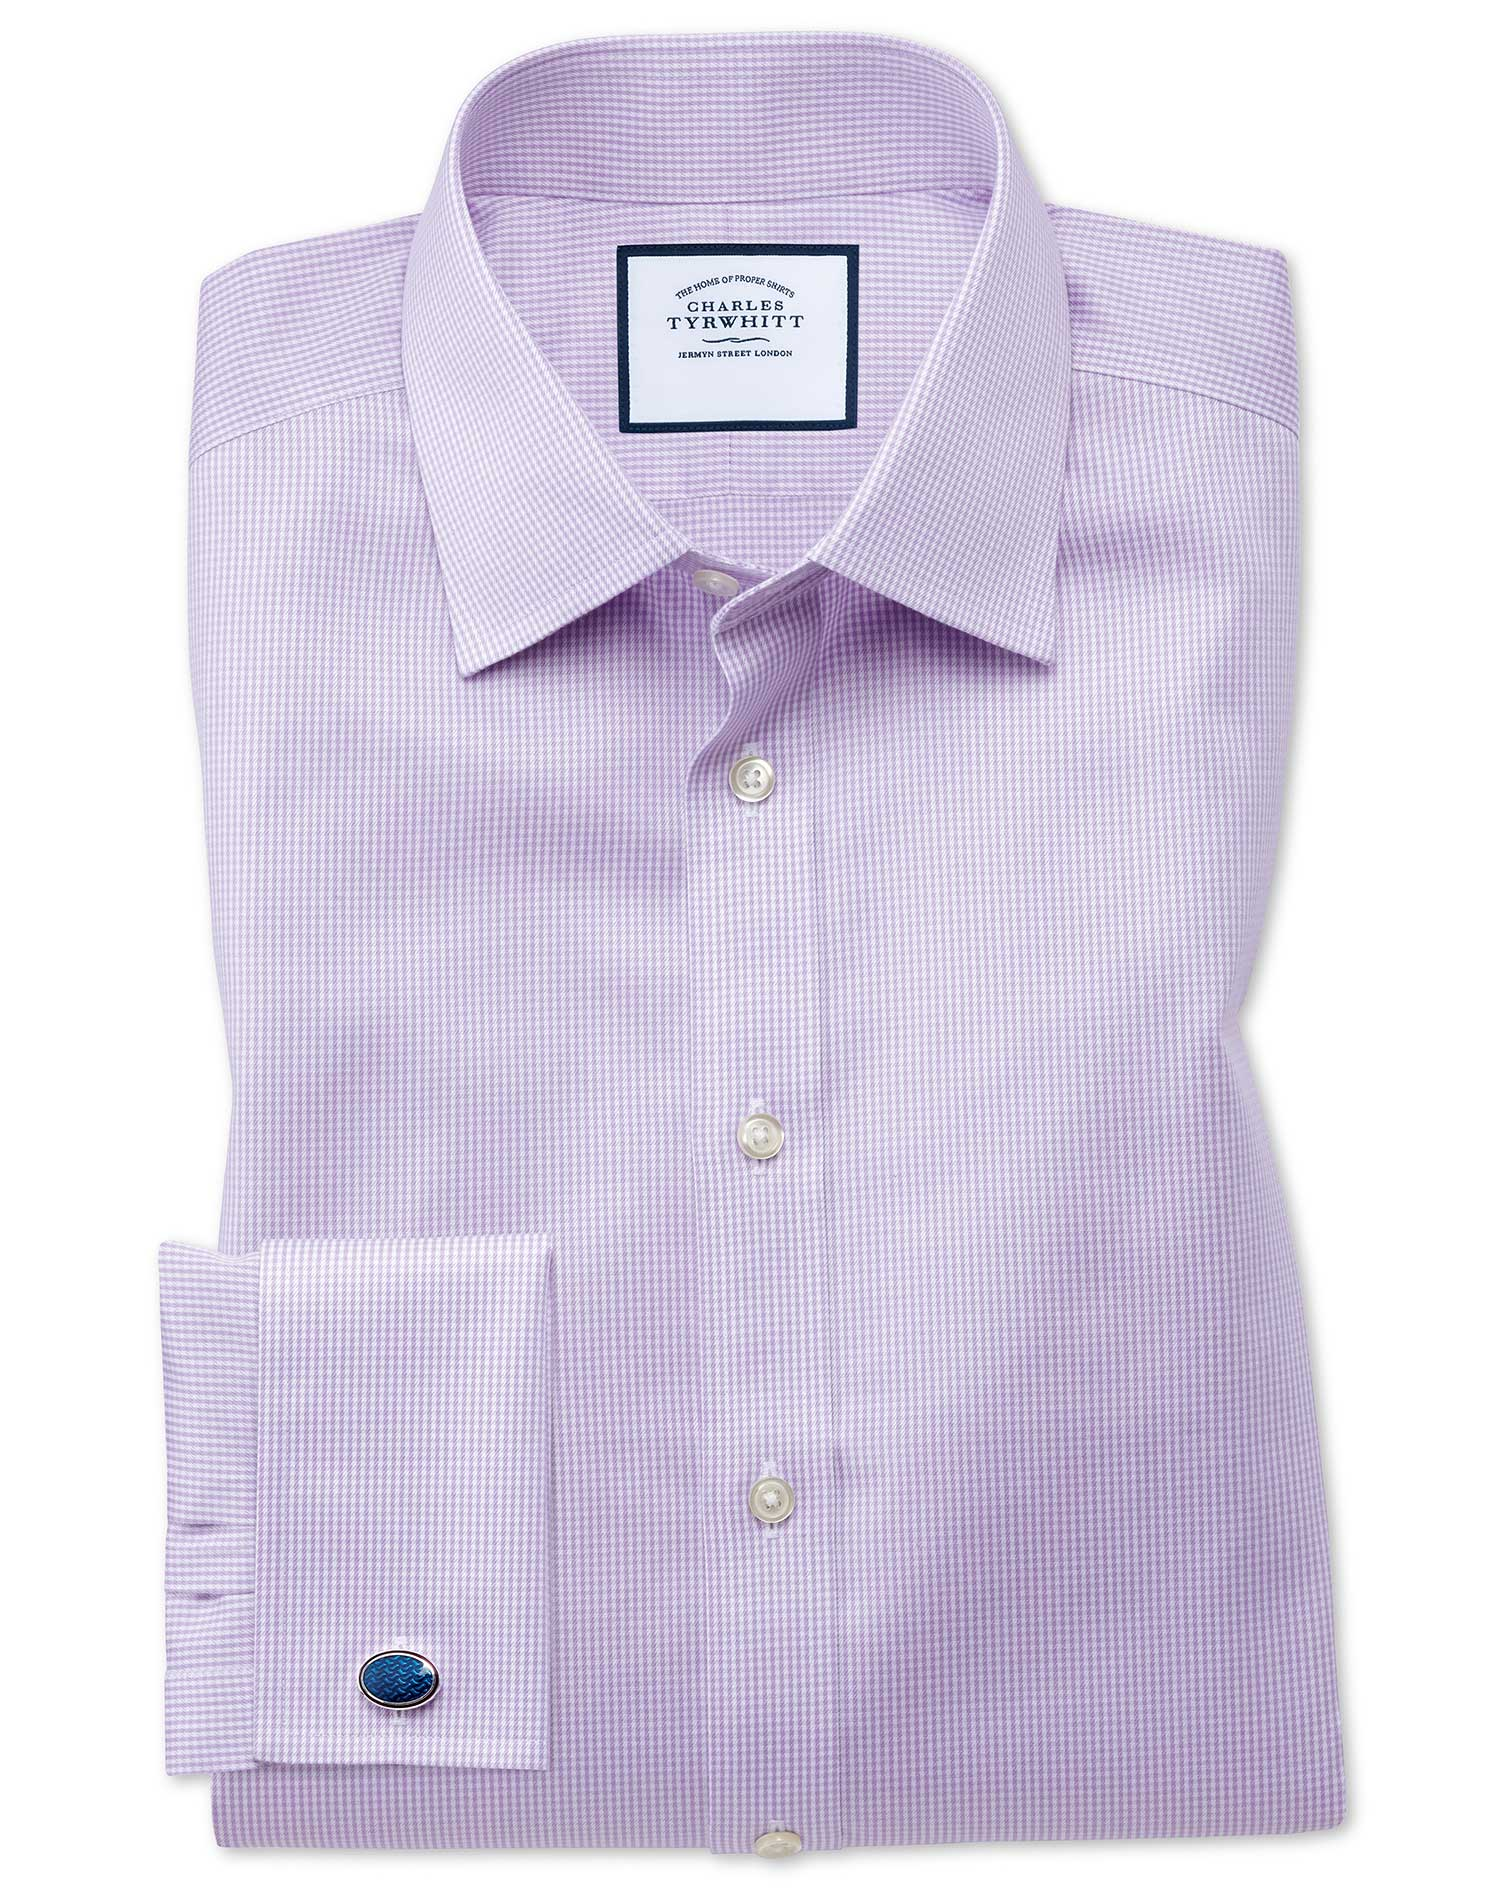 Classic Fit Non-Iron Puppytooth Lilac Cotton Formal Shirt Single Cuff Size 16.5/36 by Charles Tyrwhi